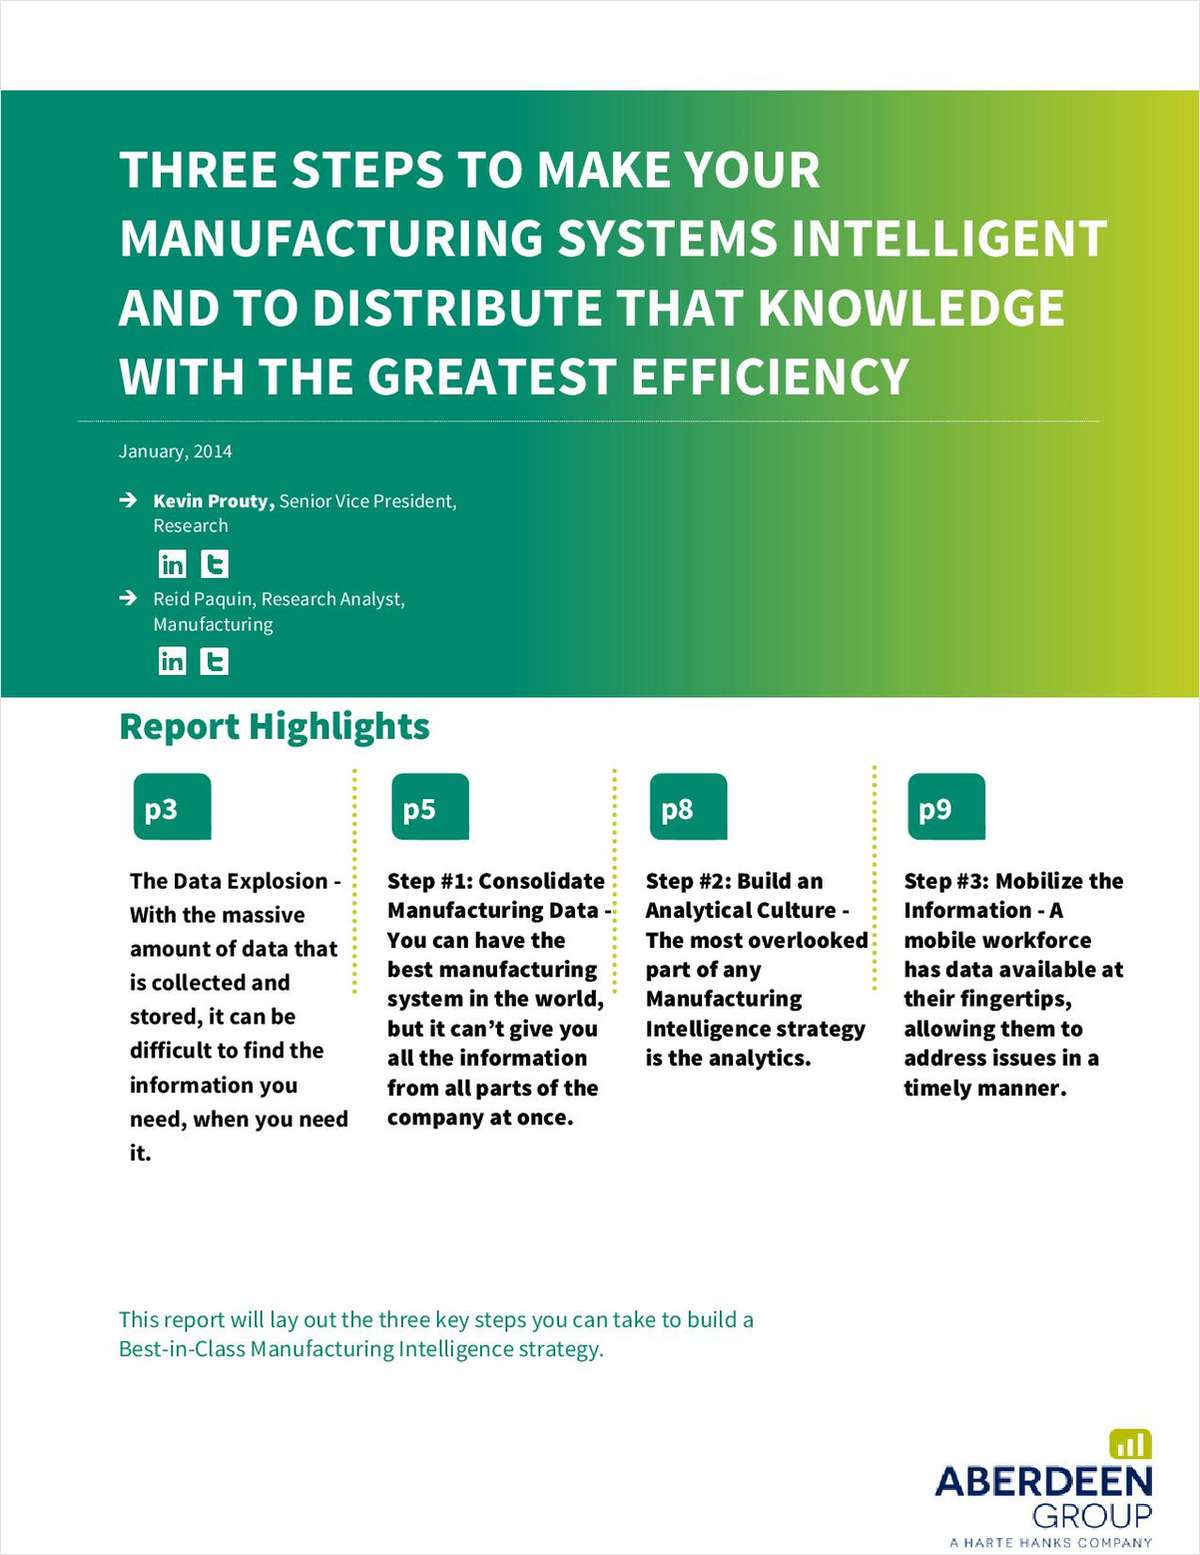 How to Build a Manufacturing Intelligence Strategy